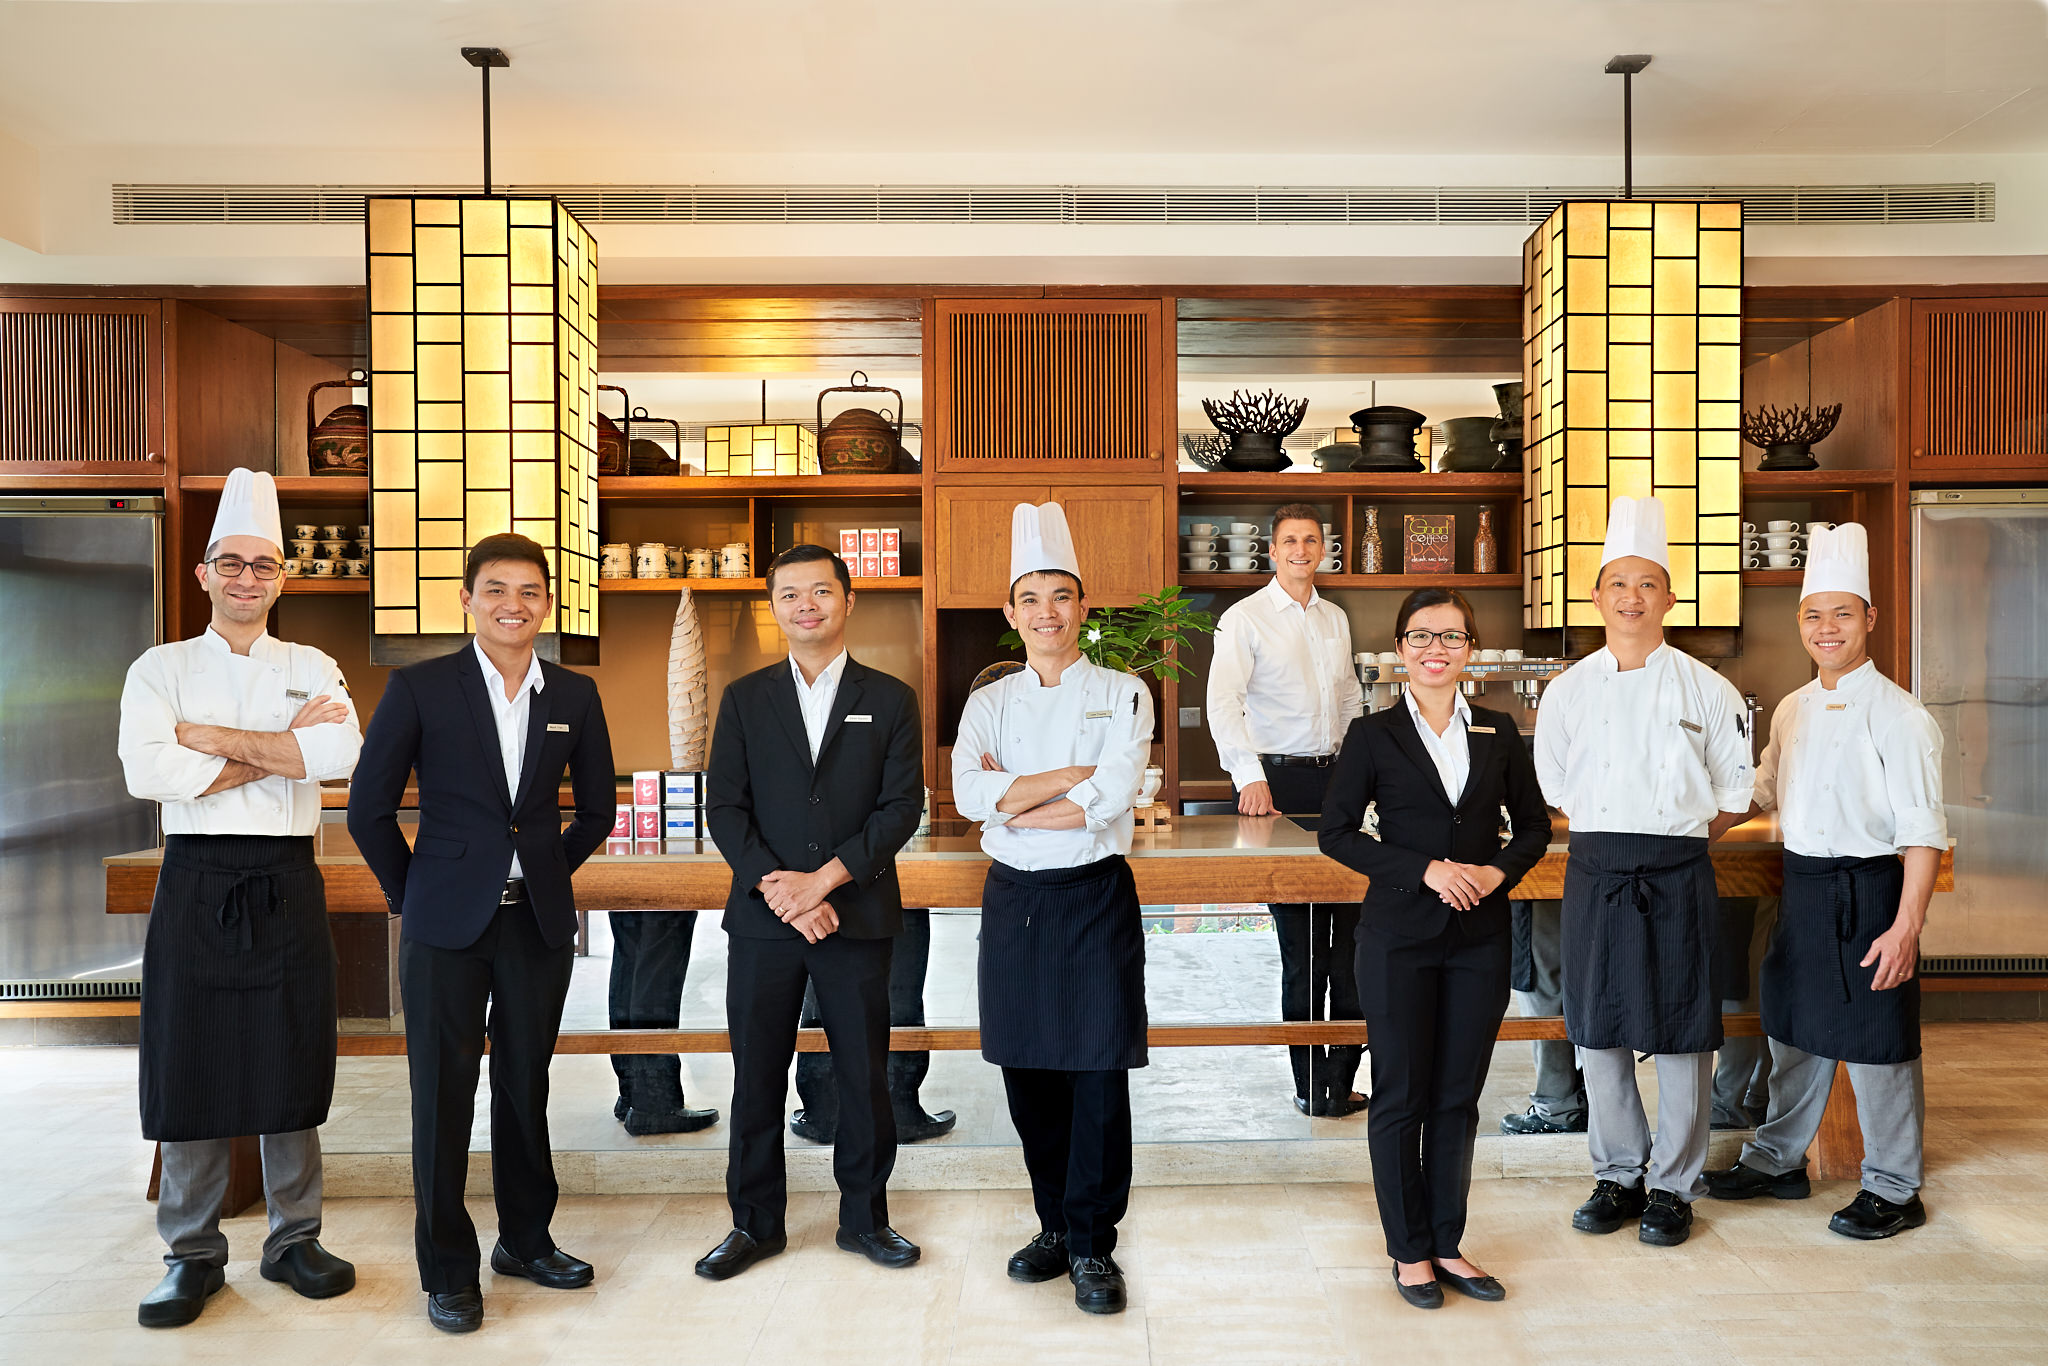 Hyatt Danang Group Staff Photo